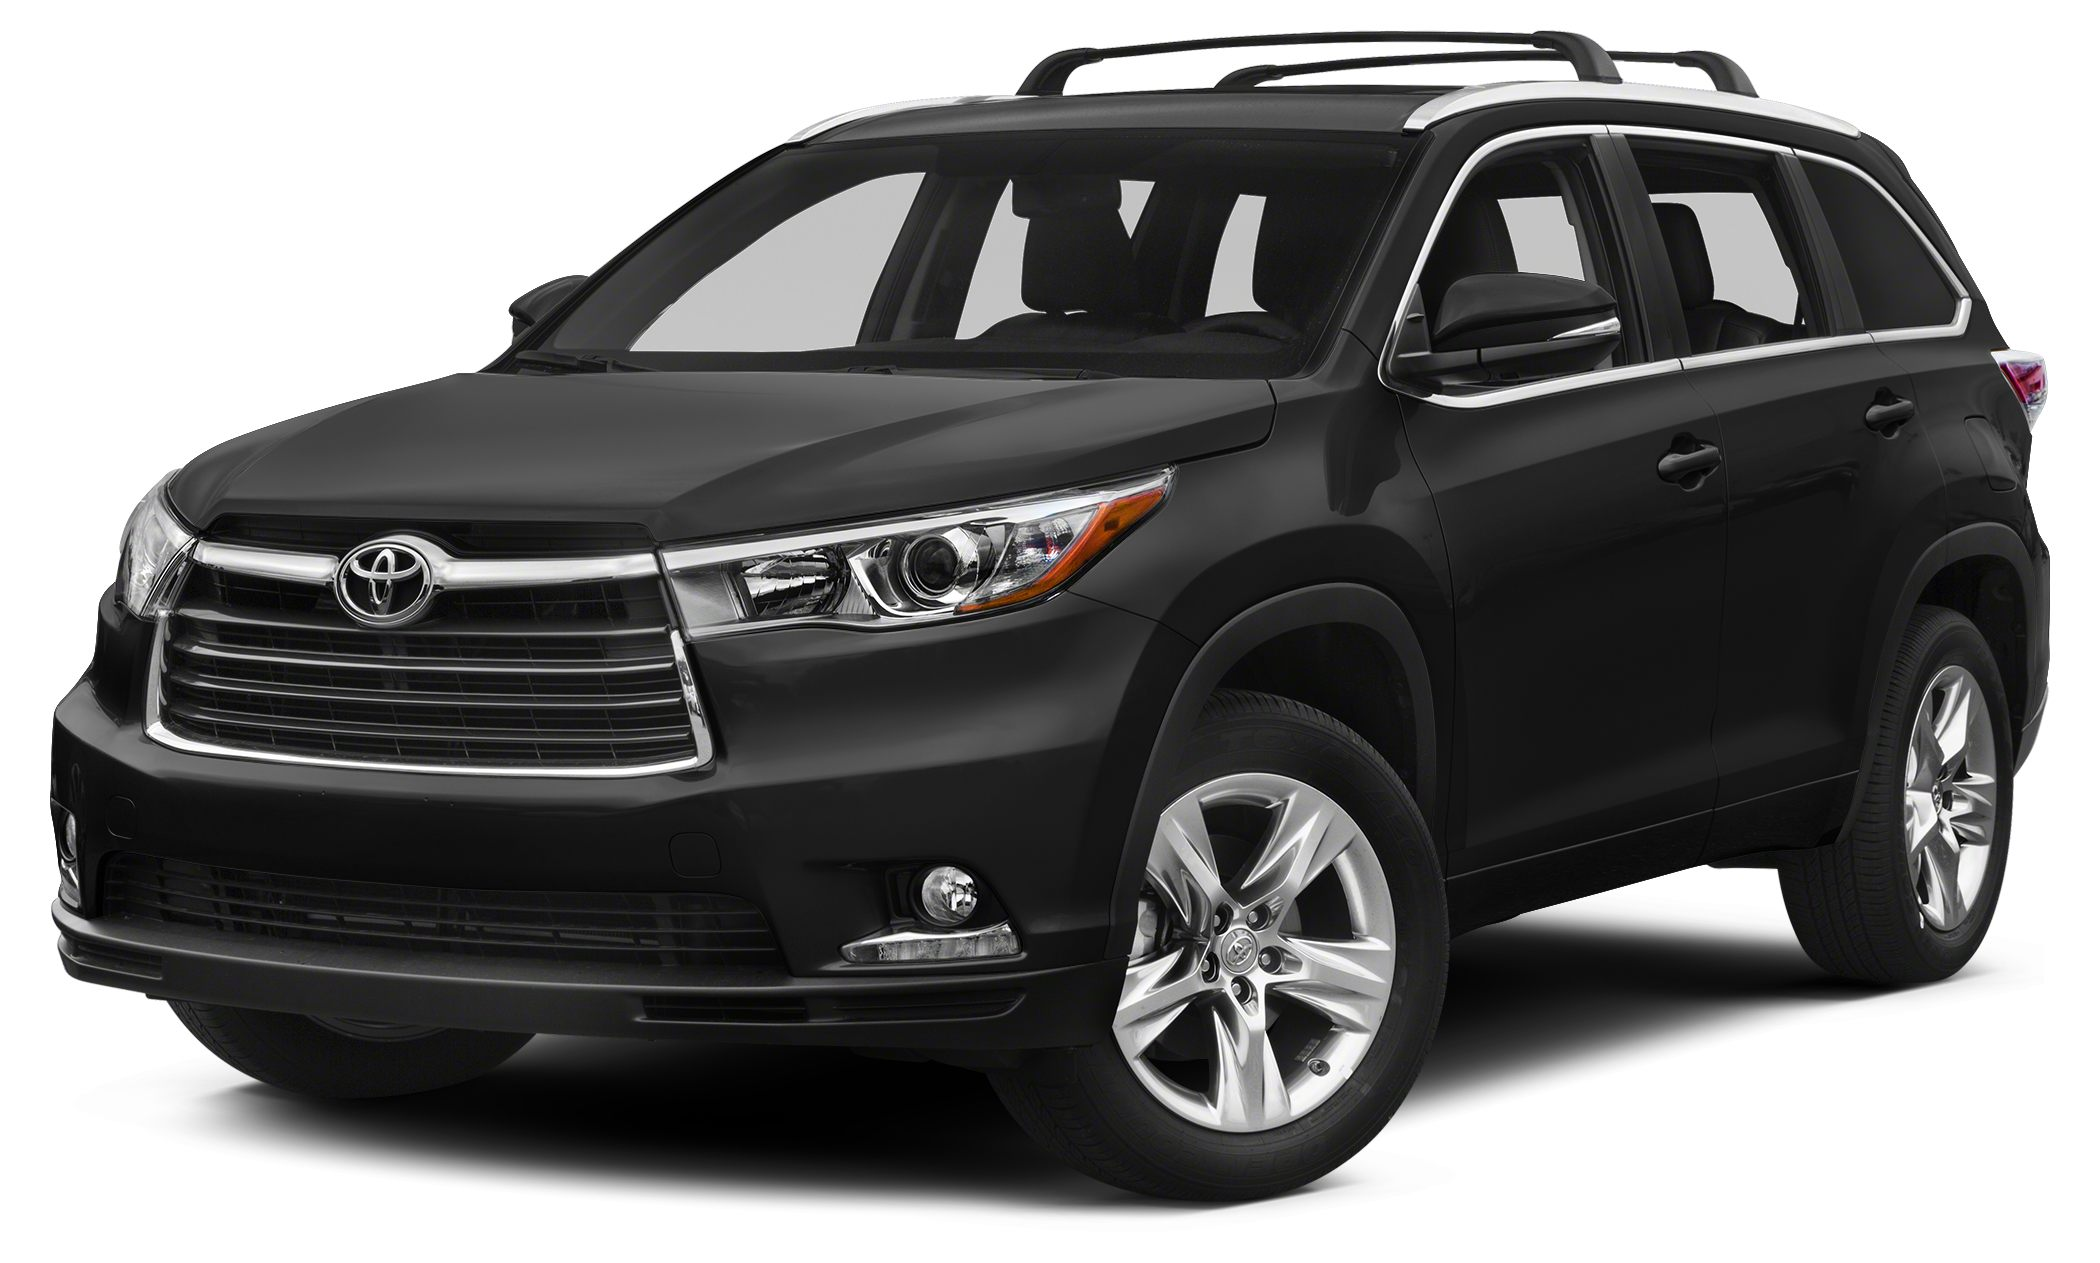 2015 Toyota Highlander Limited Platinum Miles 1816Color Black Stock T25693 VIN 5TDDKRFH0FS093